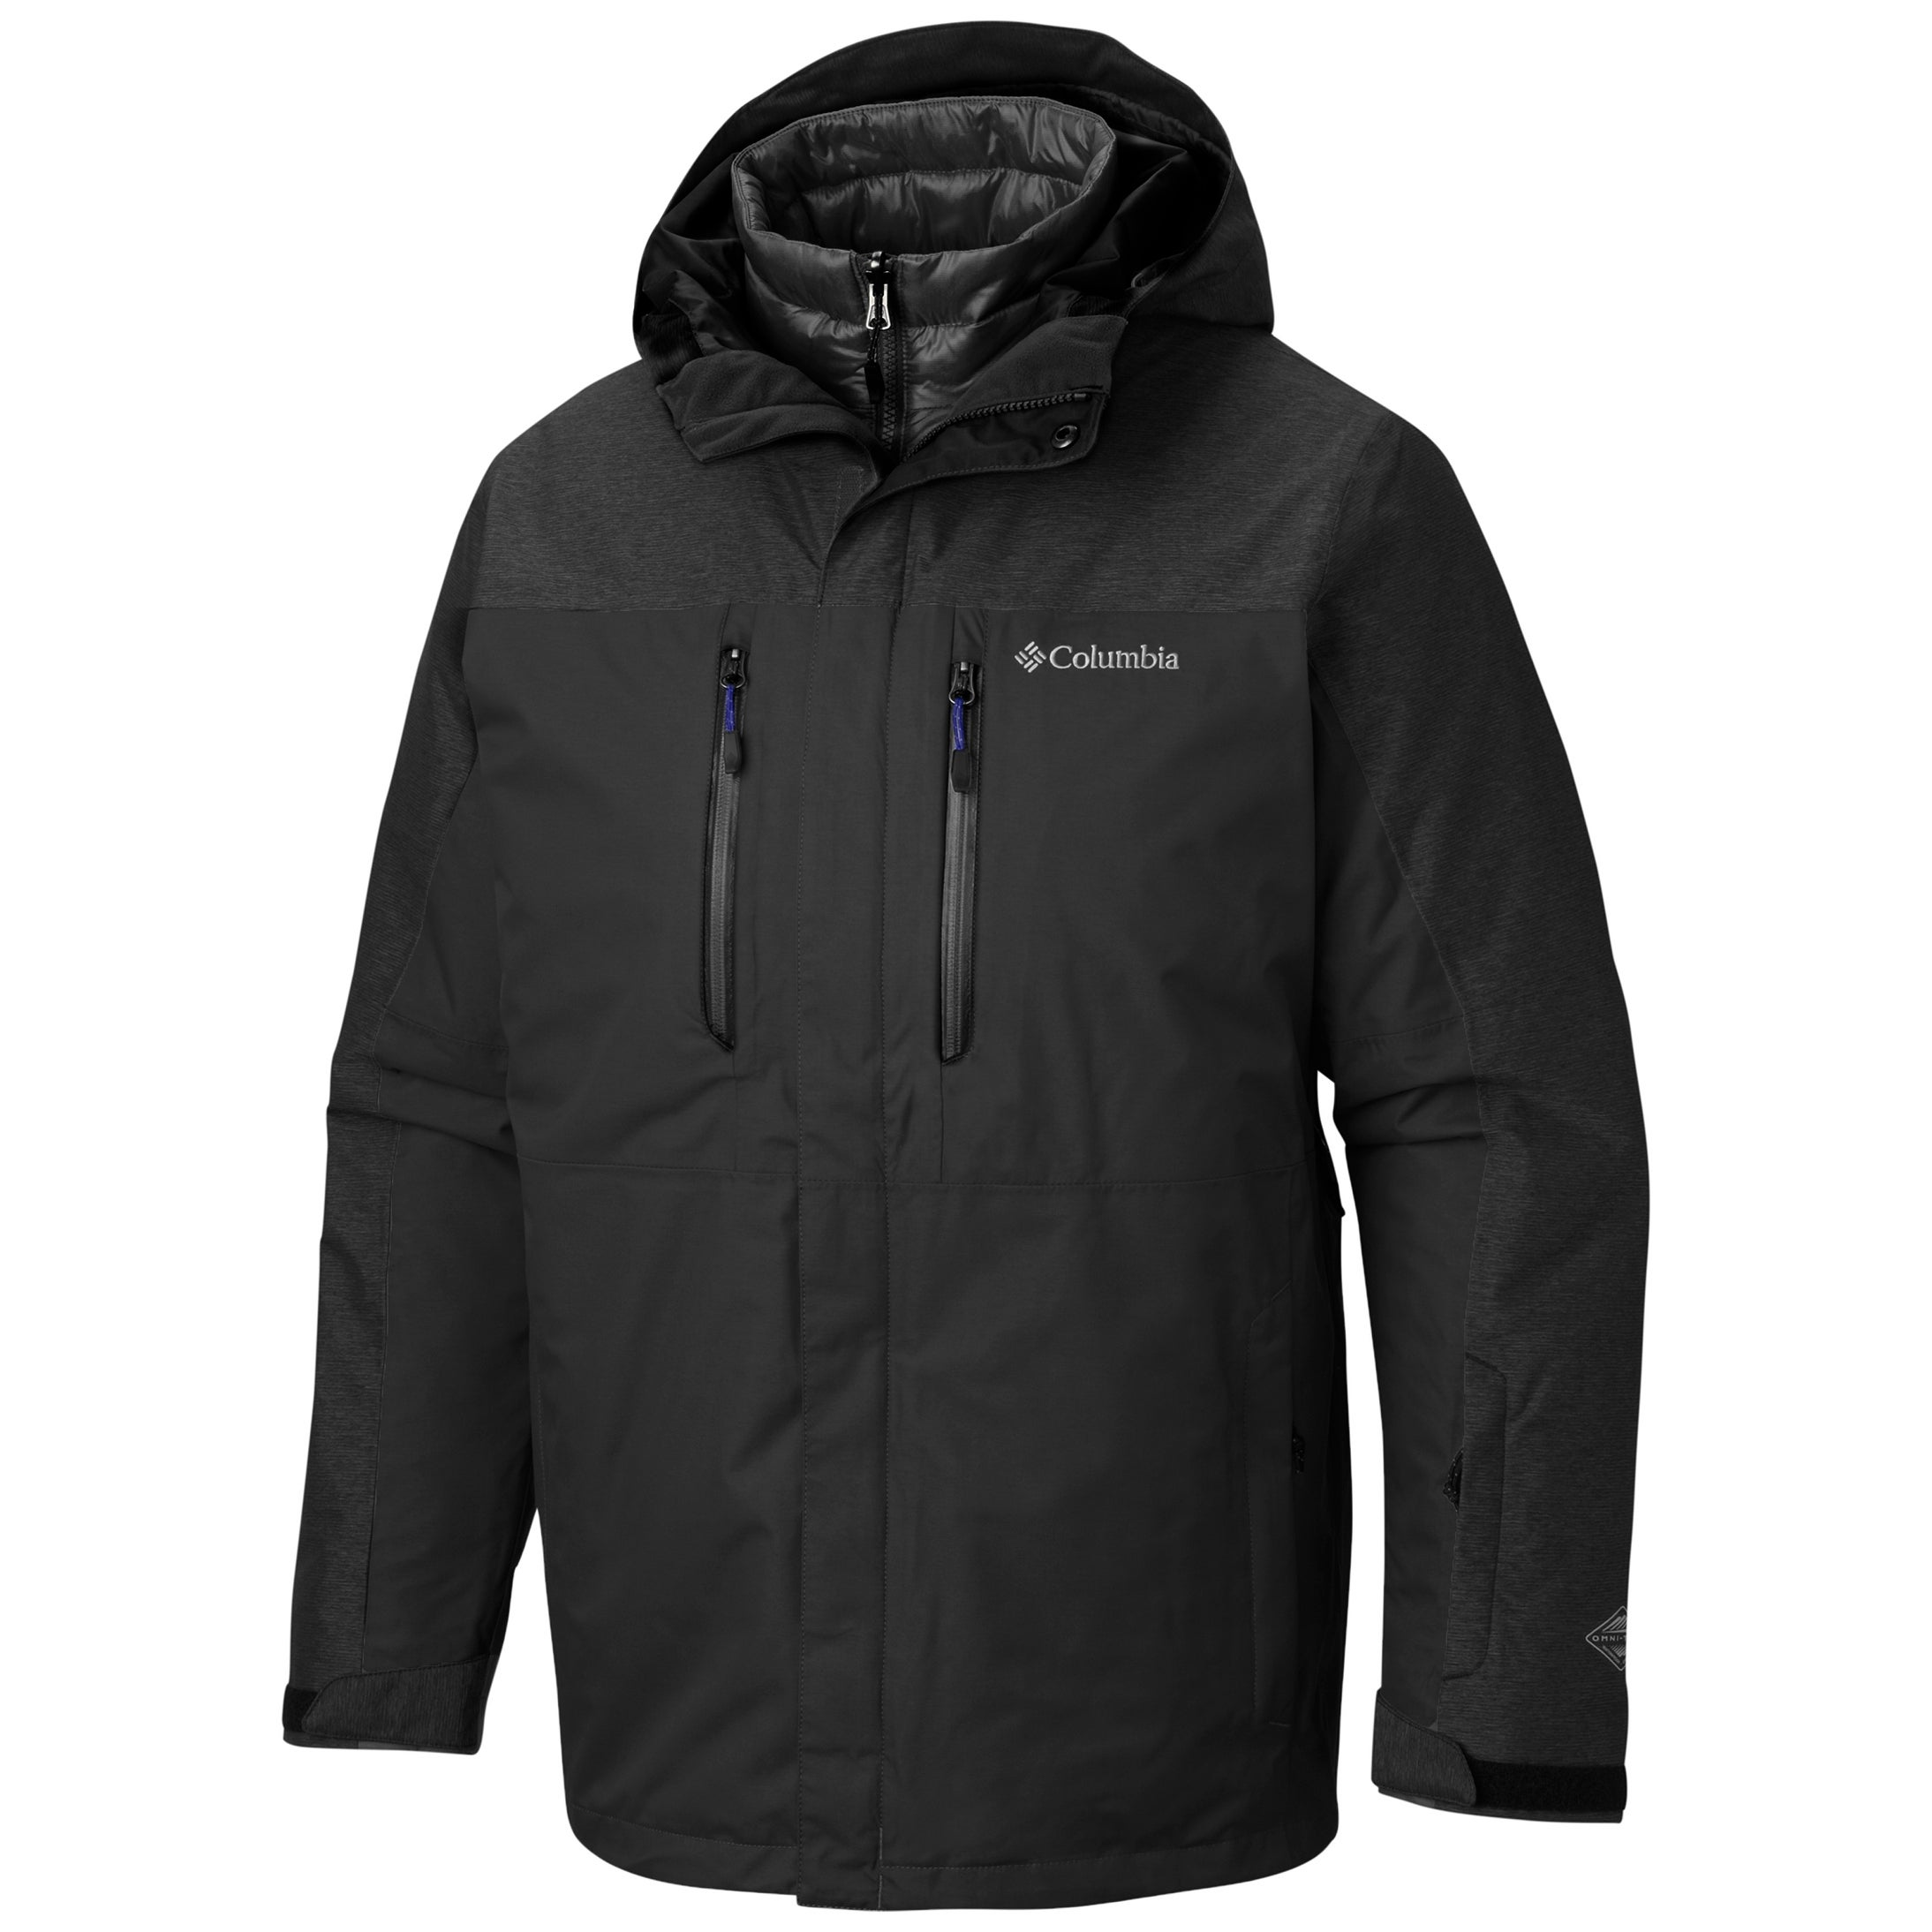 Columbia In Bounds 650 TurboDown Interface Jacket, Mens Black,Black S